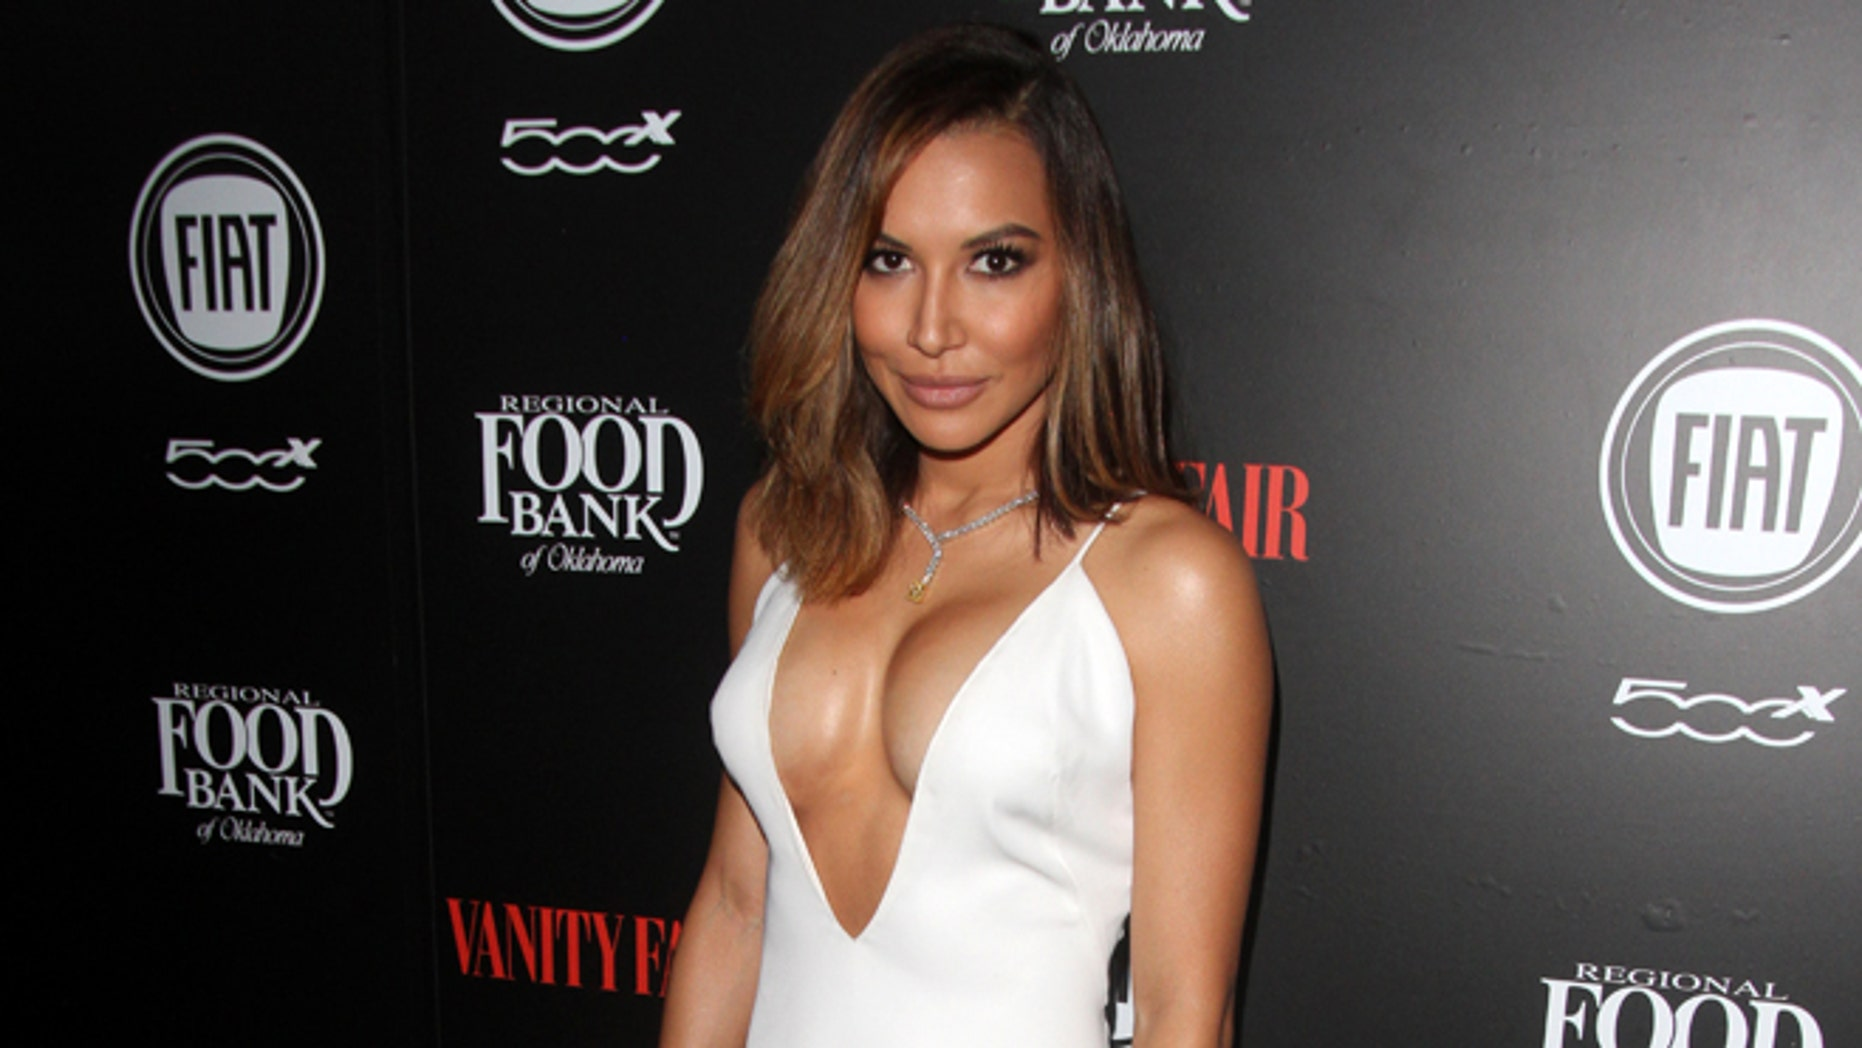 LOS ANGELES, CA - FEBRUARY 23:  Actress Naya Rivera attends the Vanity Fair And FIAT Toast To 'Young Hollywood' at Chateau Marmont on February 23, 2016 in Los Angeles, California.  (Photo by Matthew Simmons/Getty Images)